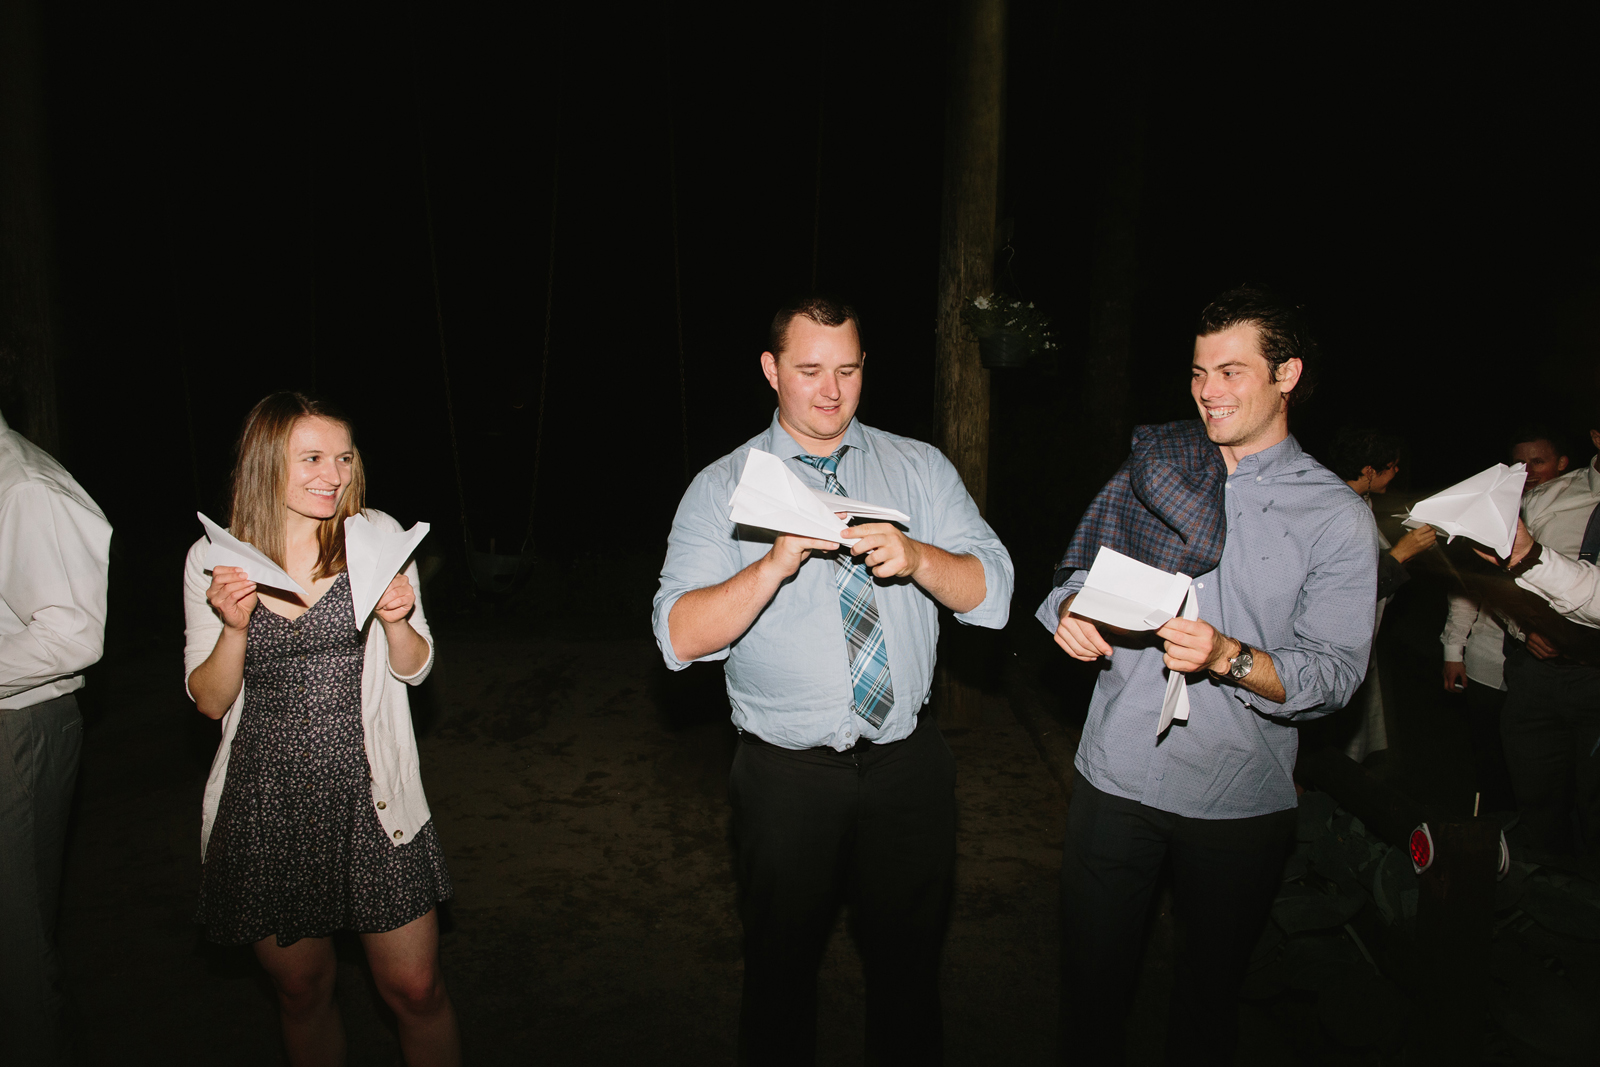 Wedding guests prepare their paper airplanes for the bride and groom's exit at a wedding reception at Bridal Veil Lakes in Corbett, OR